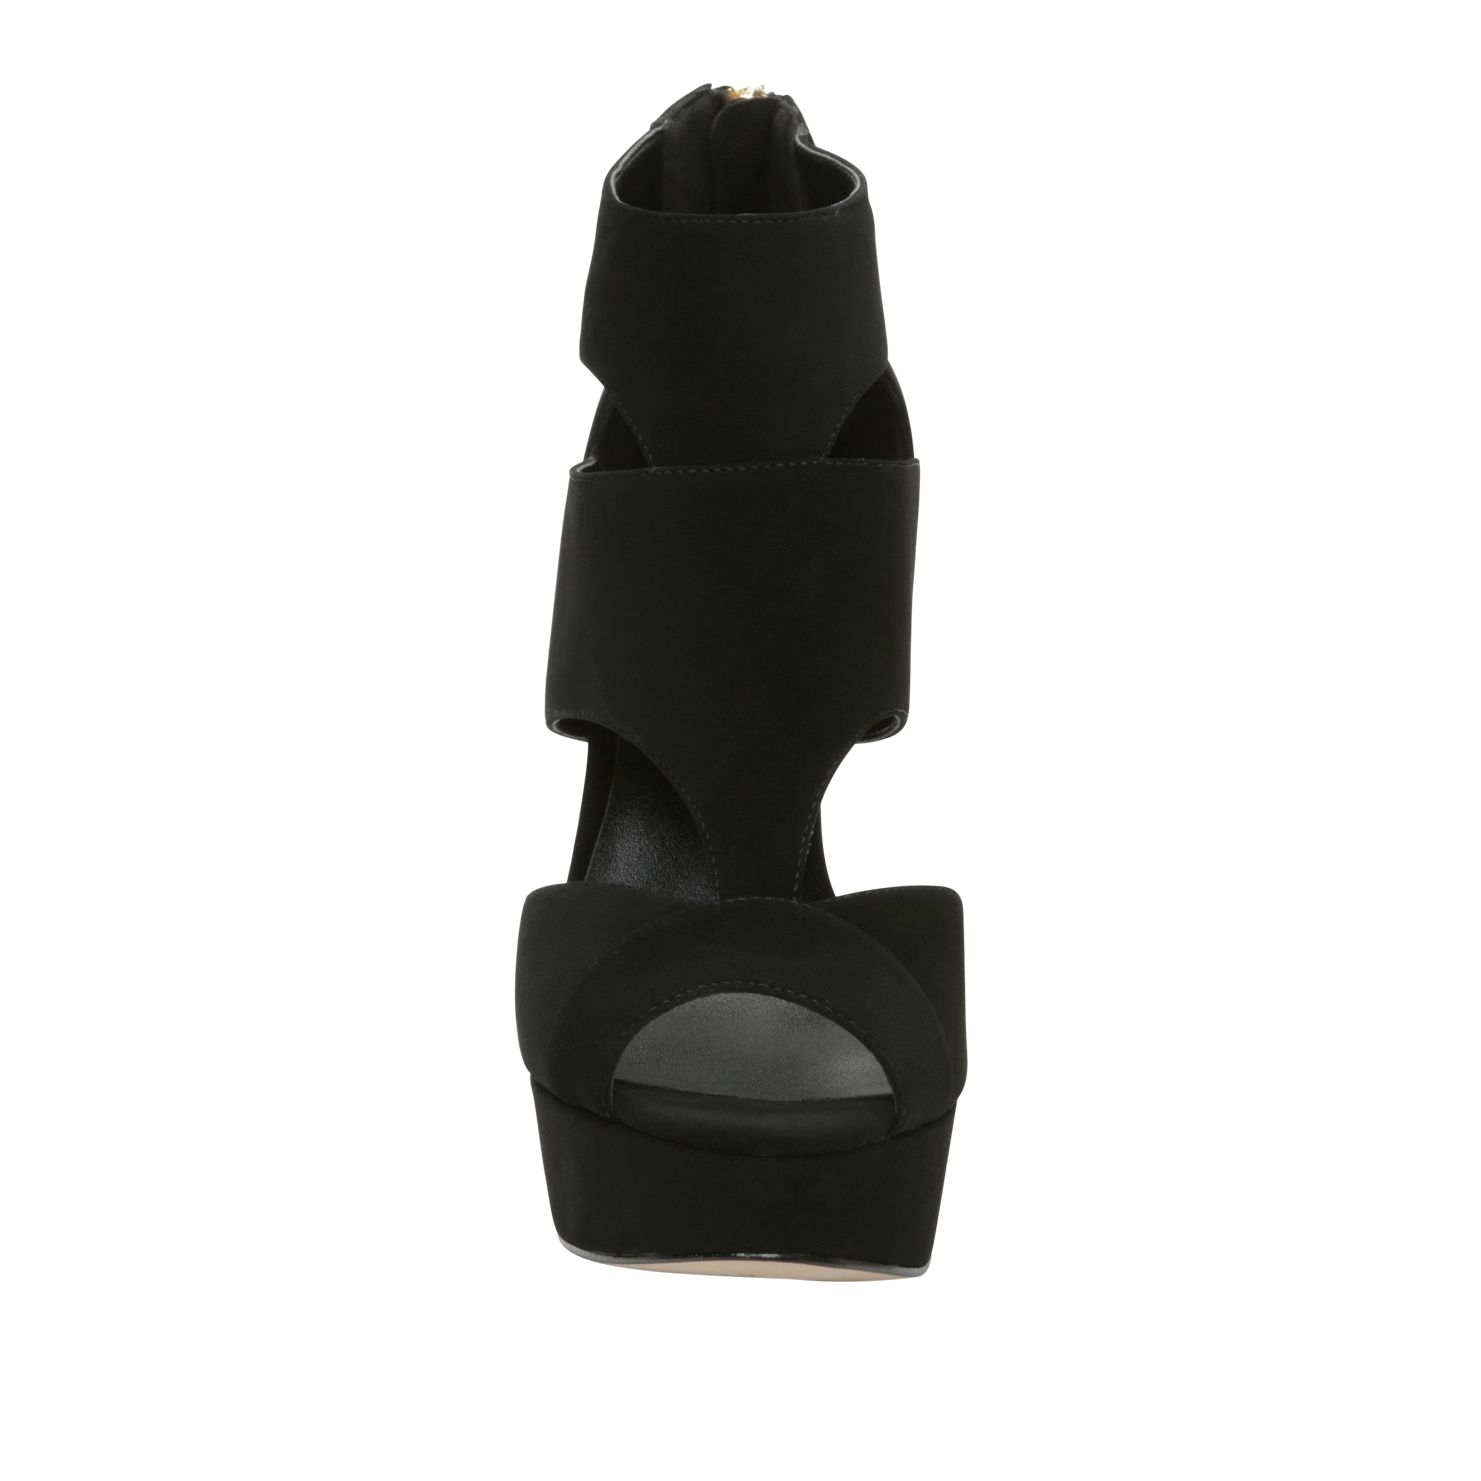 Gamagna peep toe court shoes